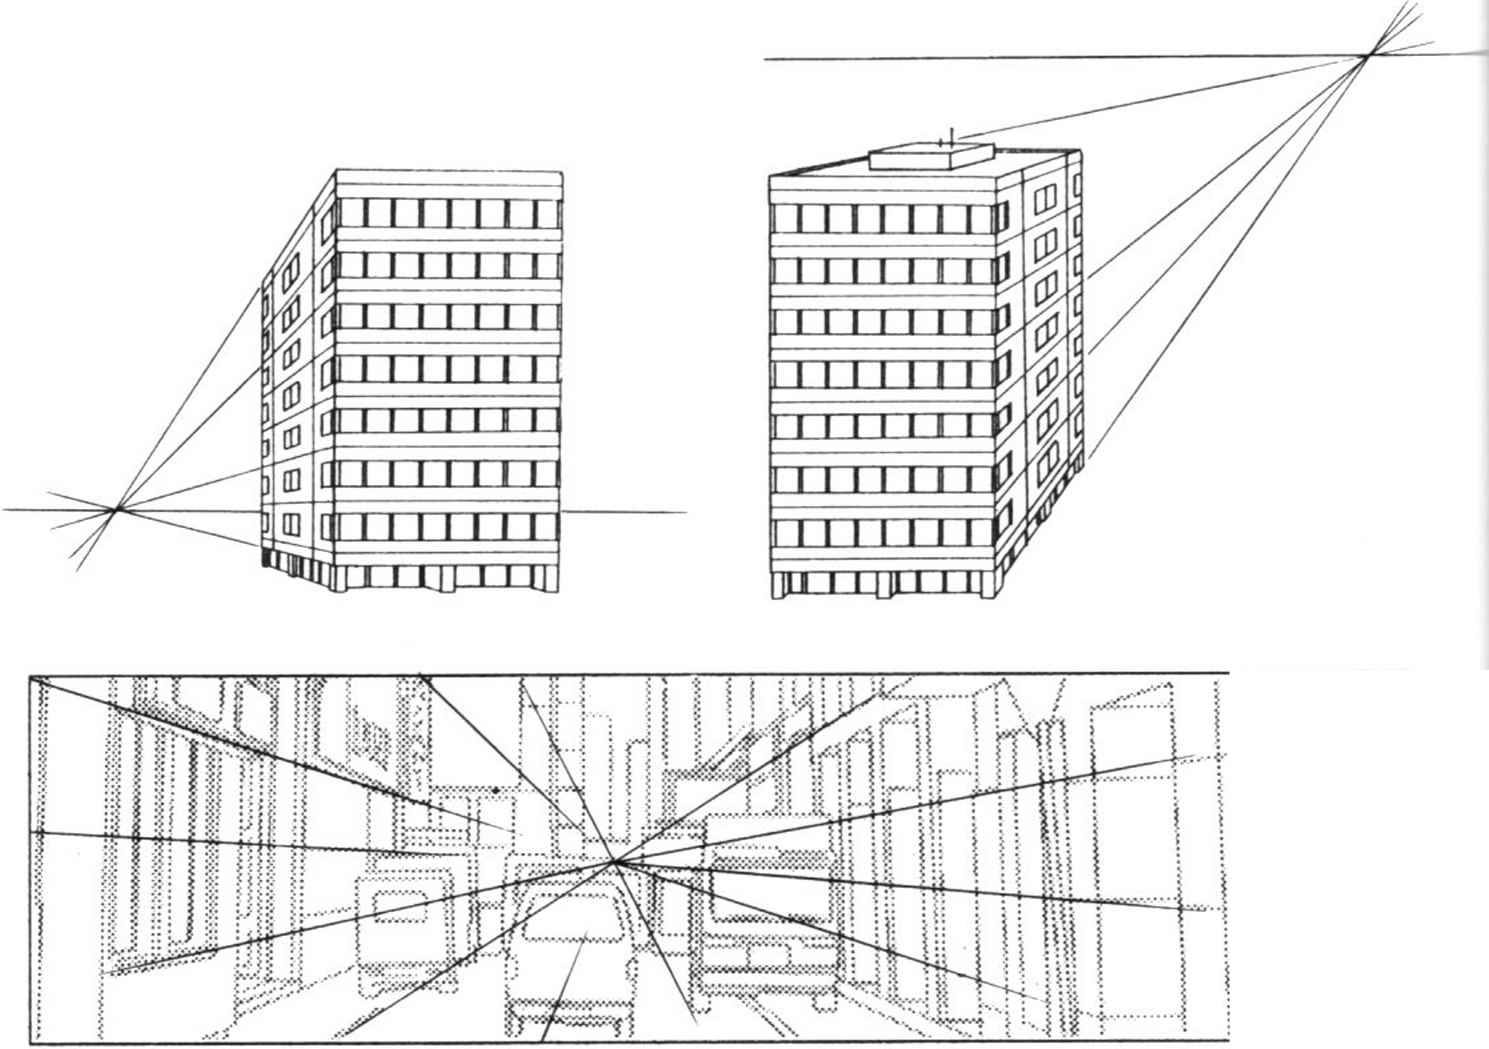 Perspective Drawings Of Buildings three point perspective buildings - draw manga - joshua nava arts